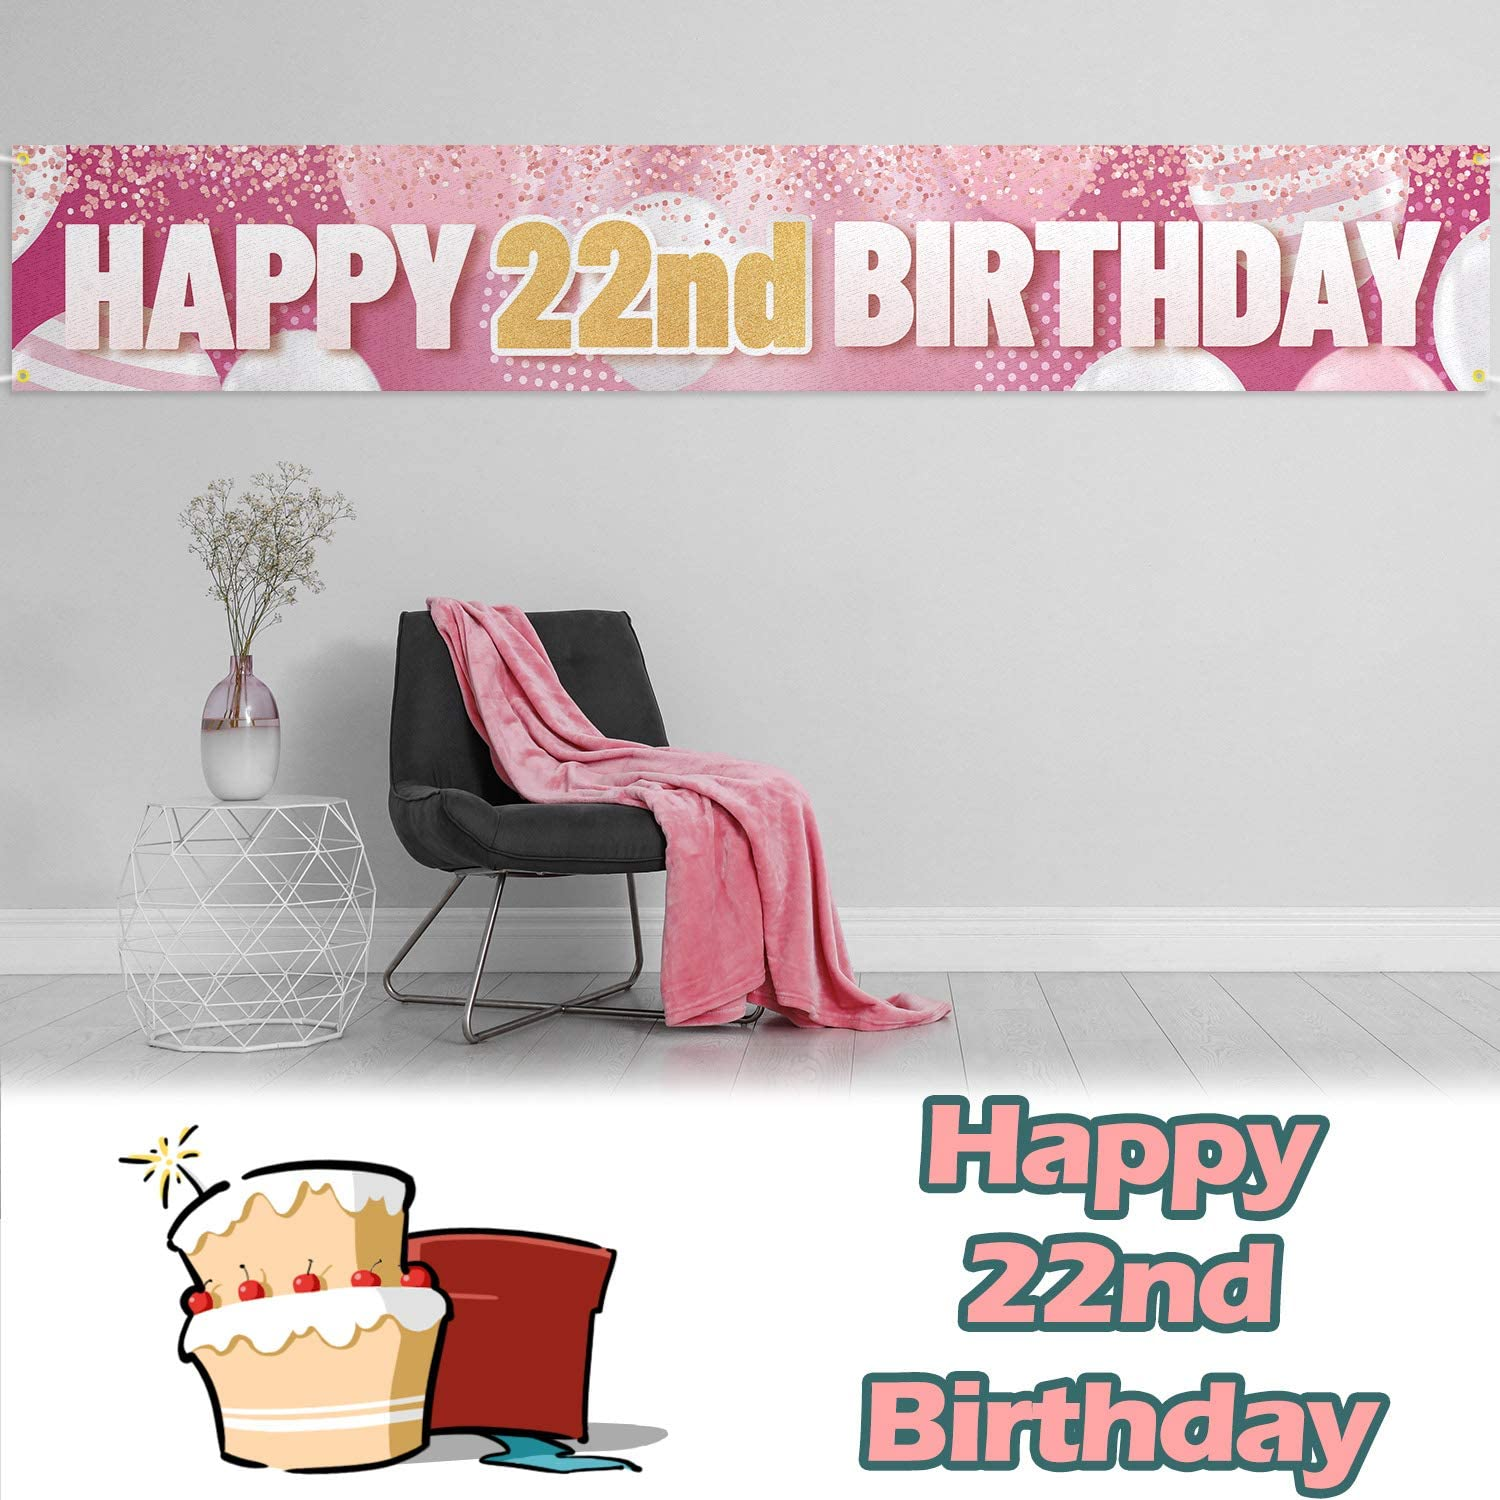 LINGPAR 9.8 x 1.6 ft Large Sign Happy 10th Birthday Banner Pink Cheers to 10 Years Old Decor